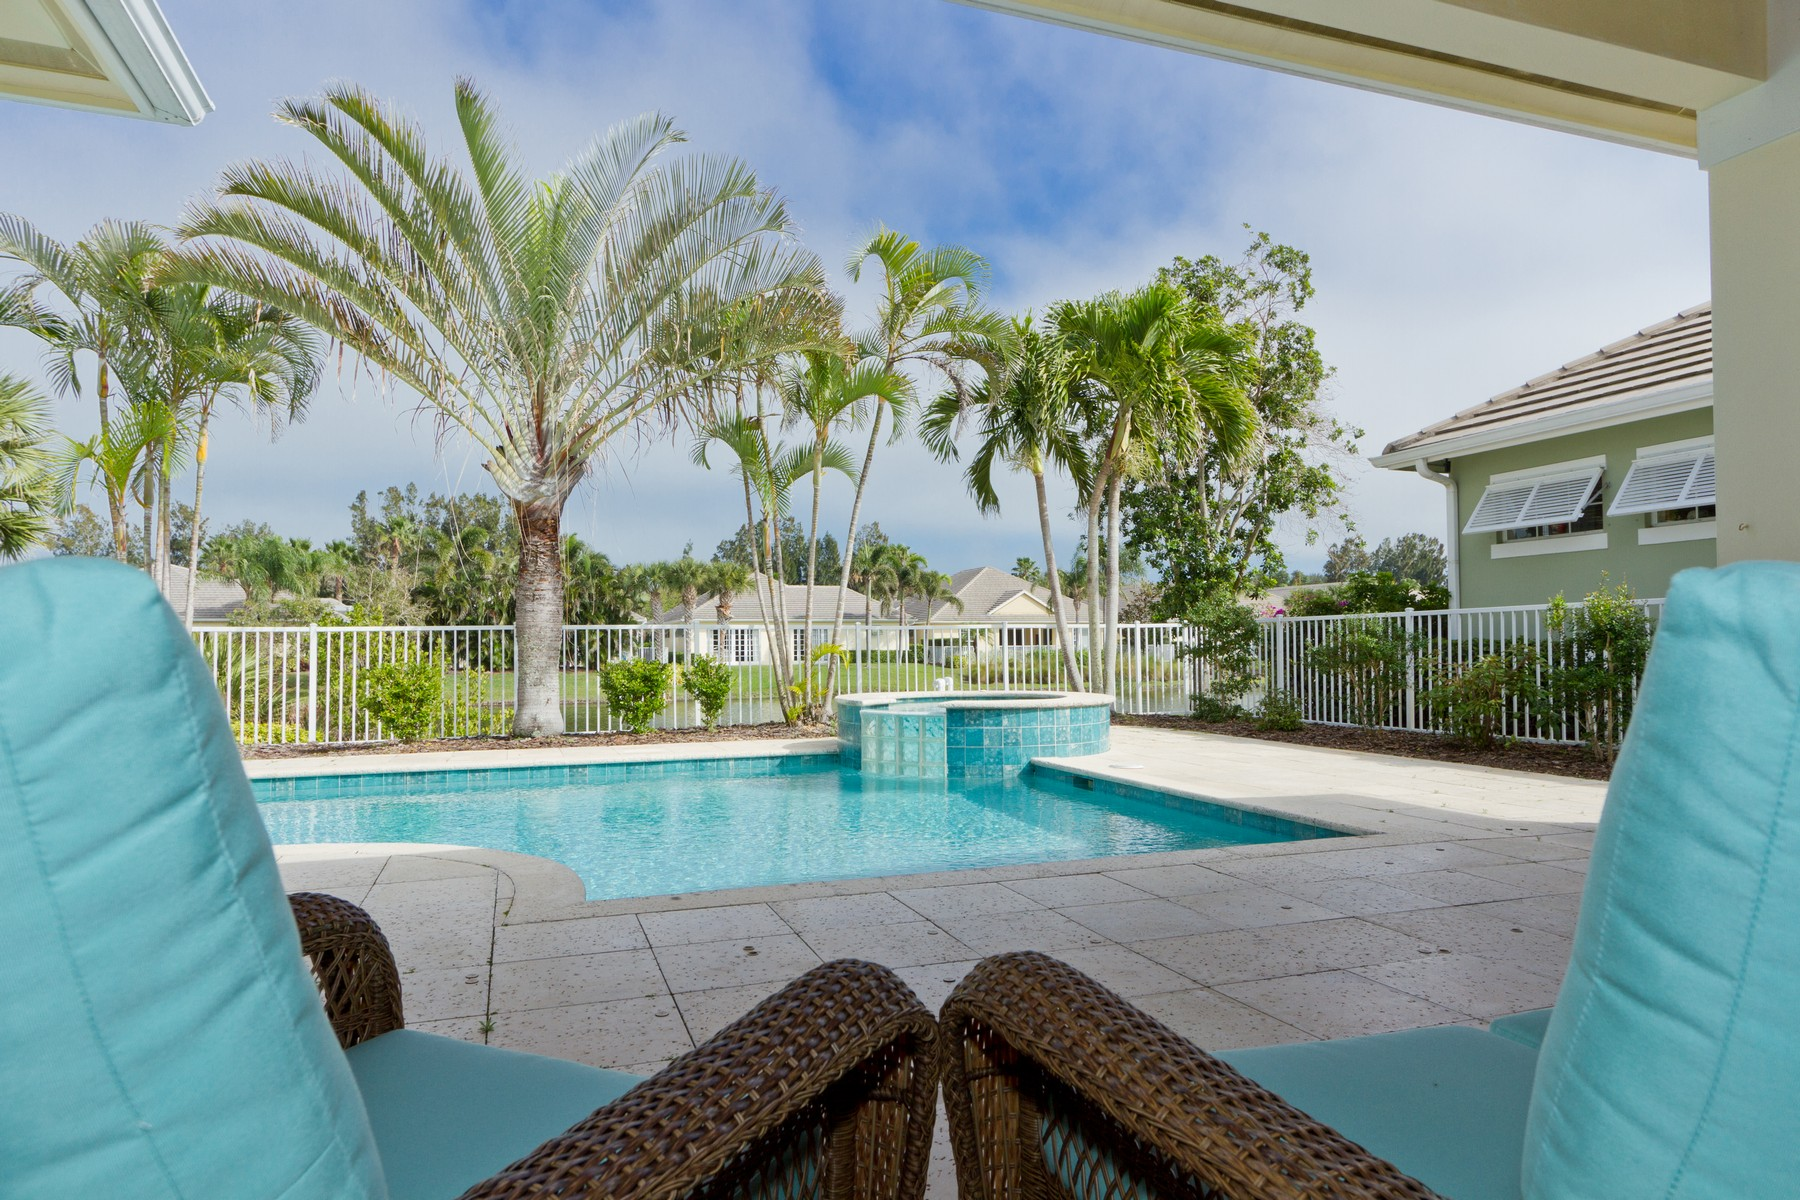 Single Family Home for Sale at West Indies Lakefront Beauty 9170 Seasons Terrace Vero Beach, Florida 32963 United States